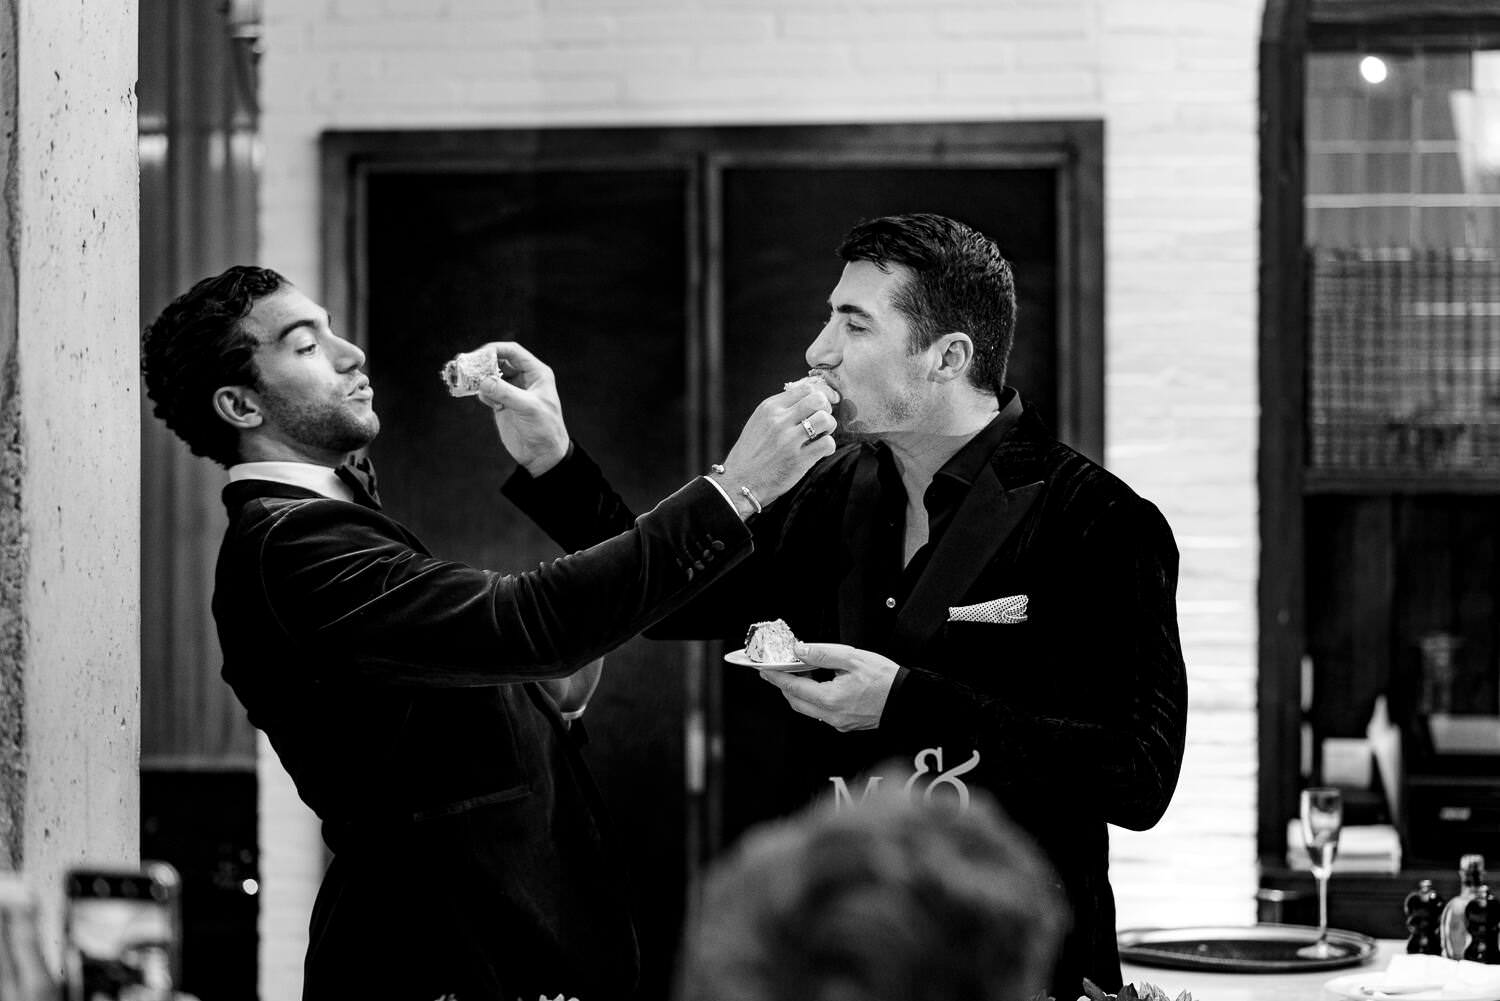 grooms cutting the cake at their wedding dinner at soho house